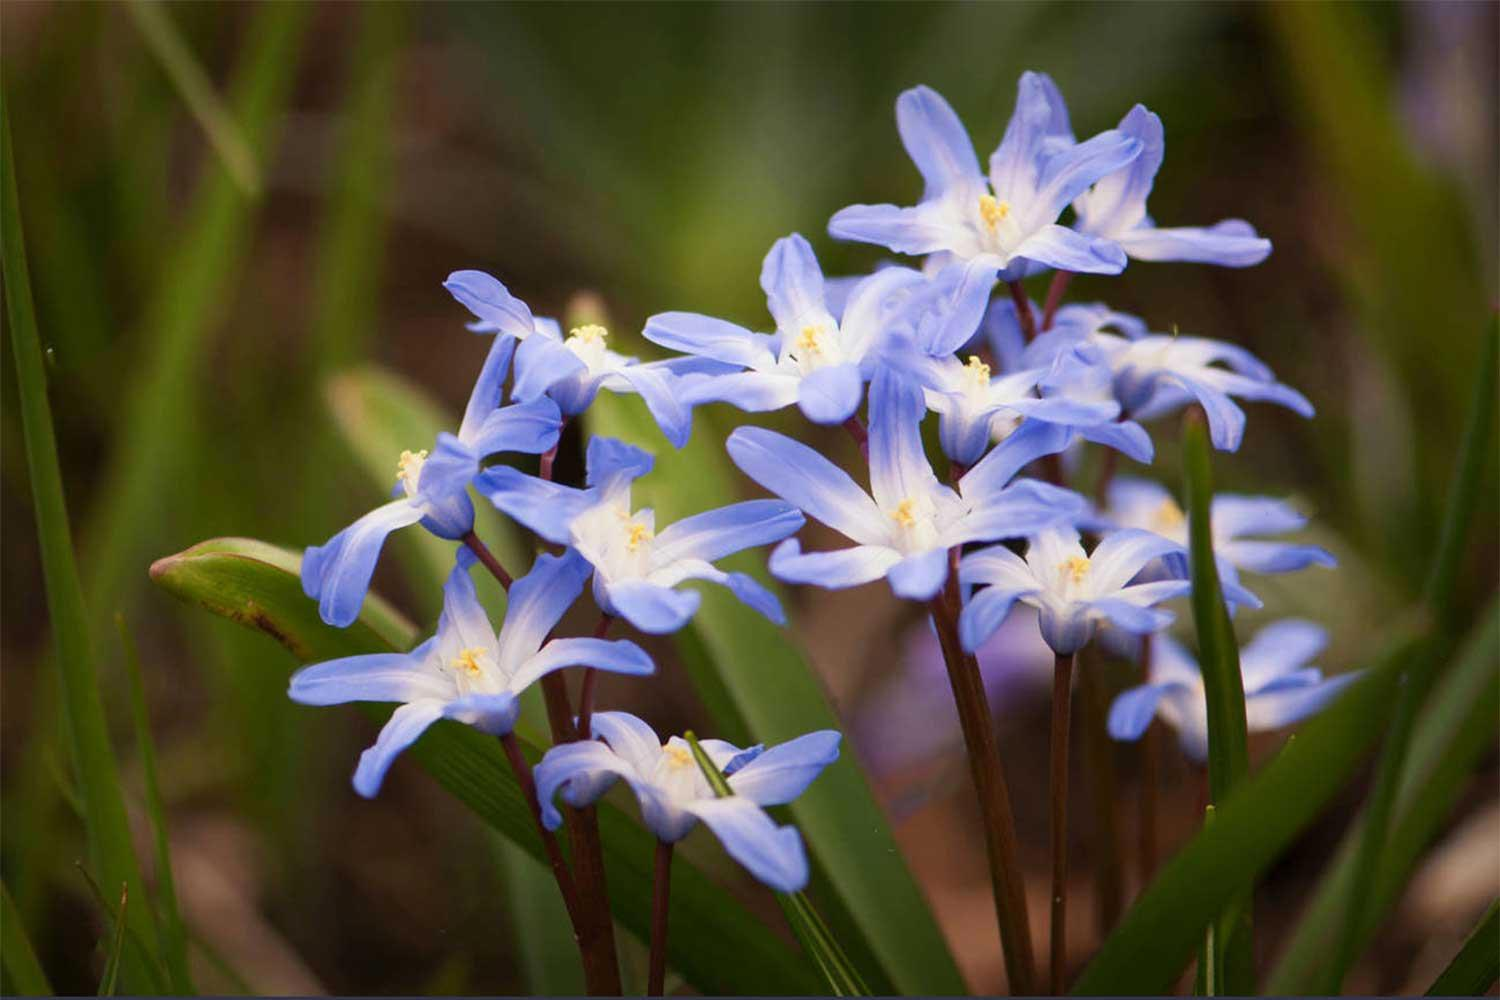 Pale blue, heart-shaped flowers with a white center.